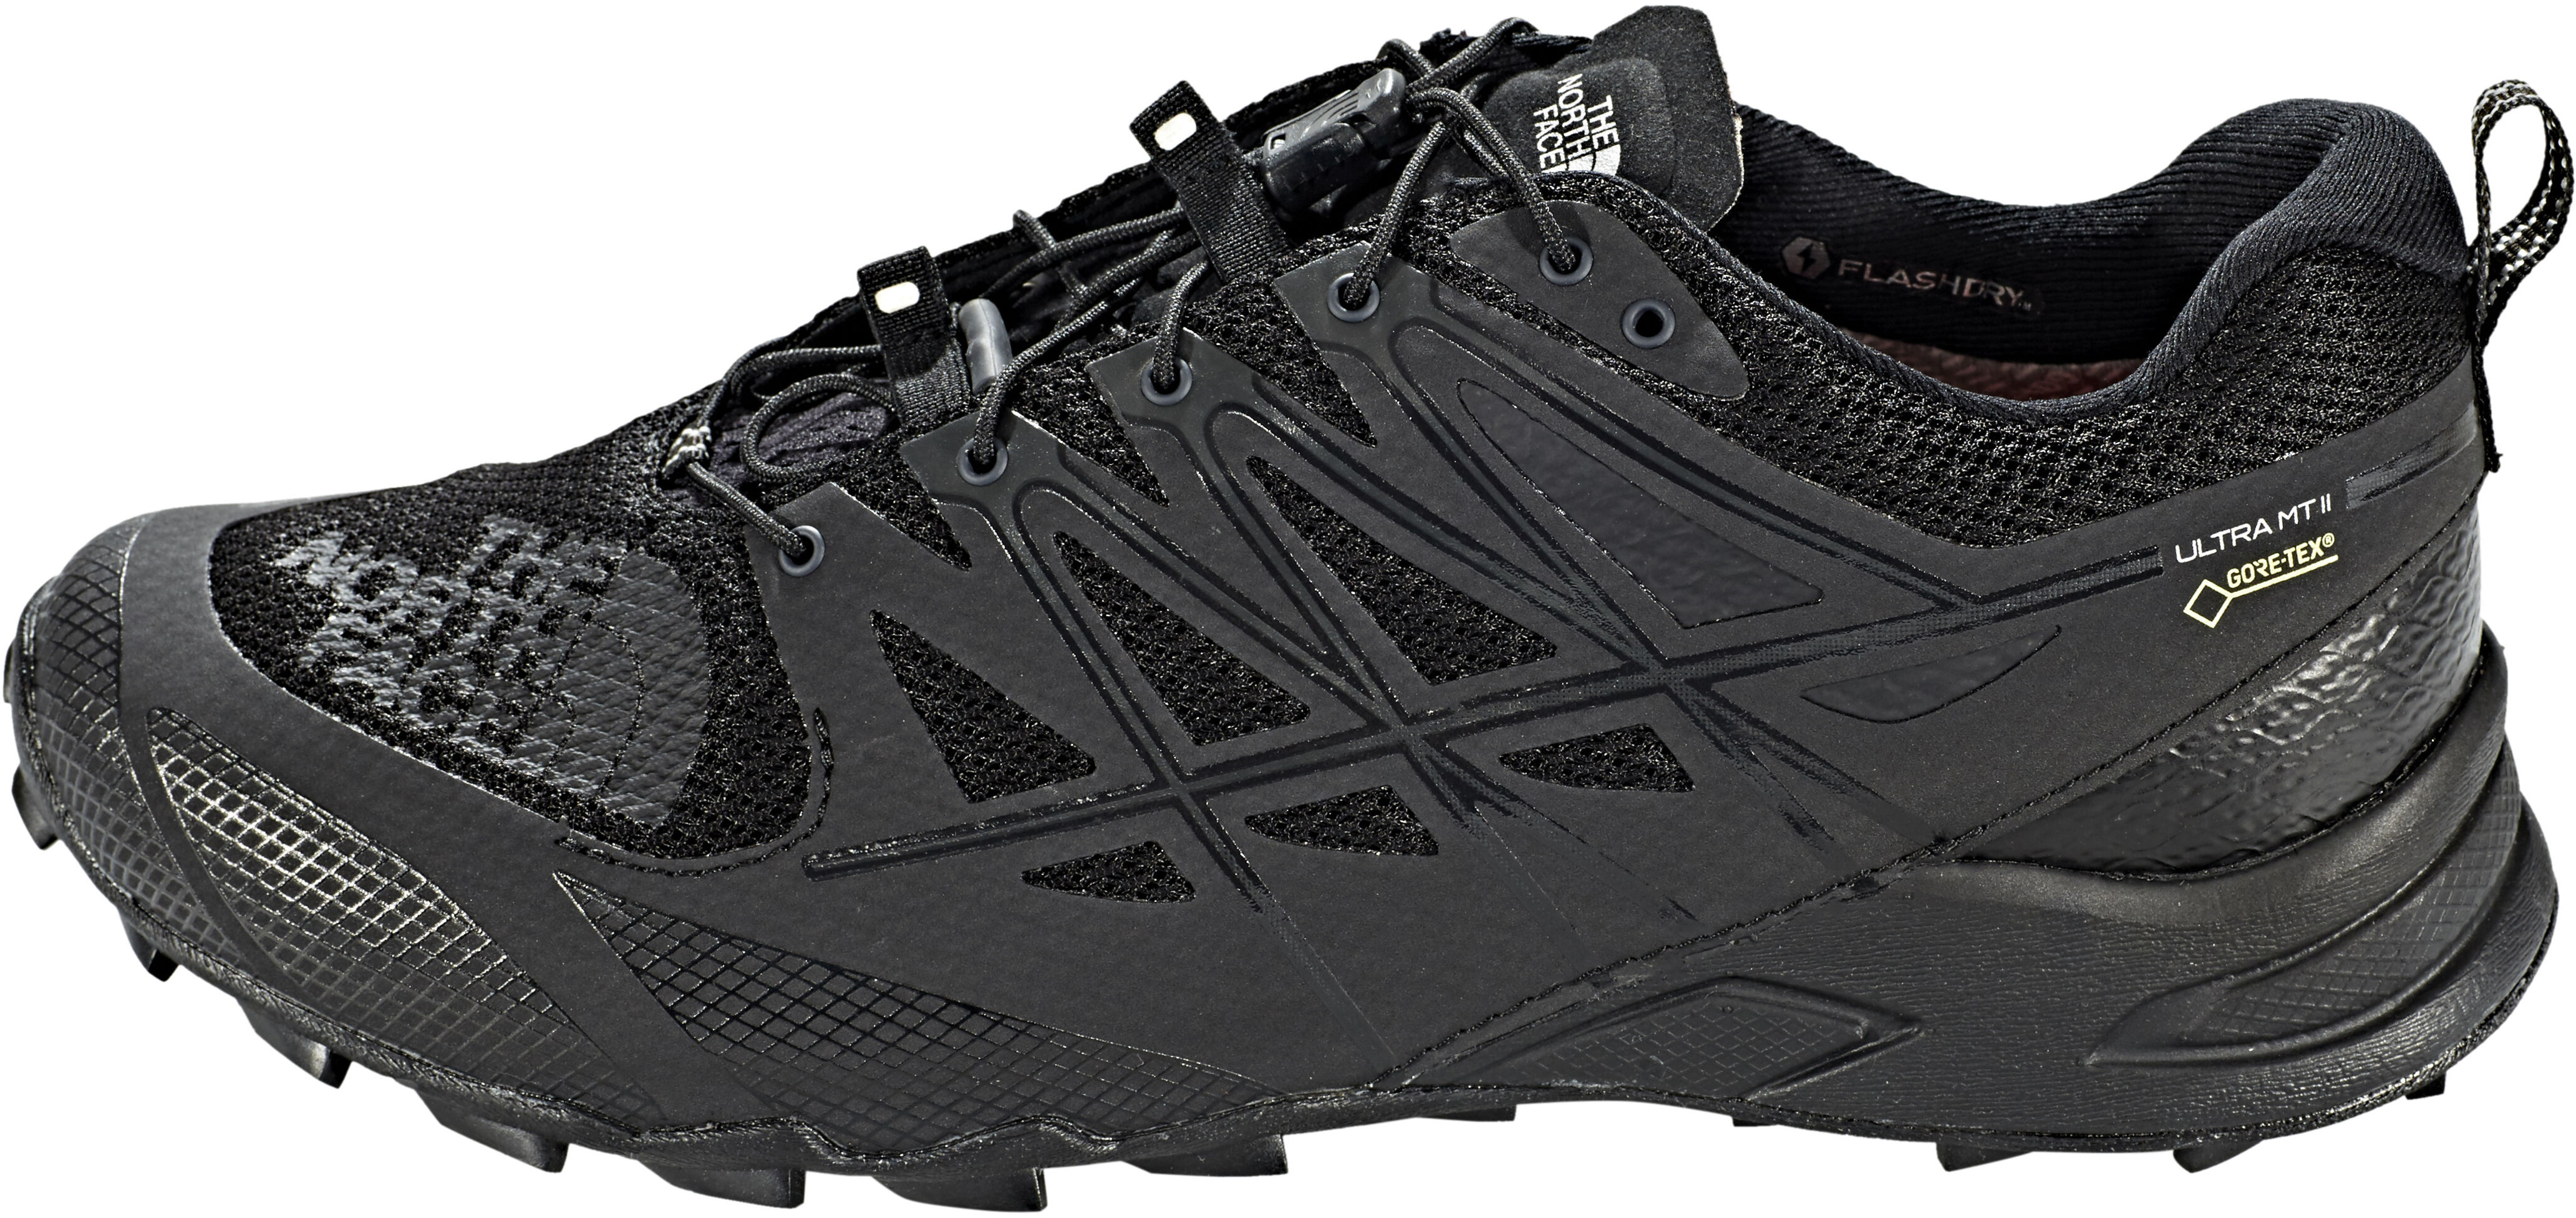 62606c47c2e The North Face Ultra MT II GTX - Zapatillas running Hombre - negro ...